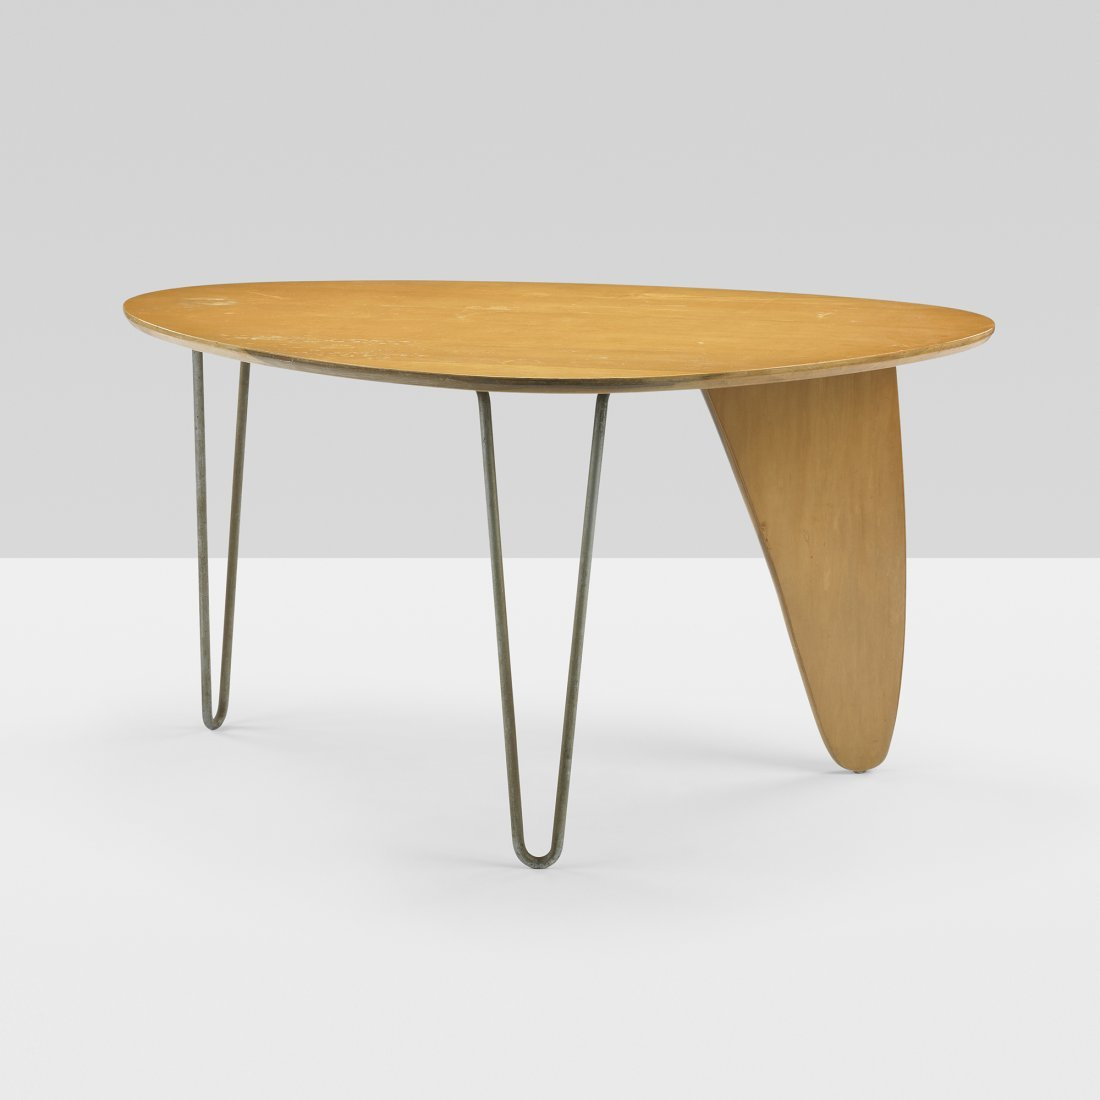 203: Isamu Noguchi Rudder dining table, model IN-20